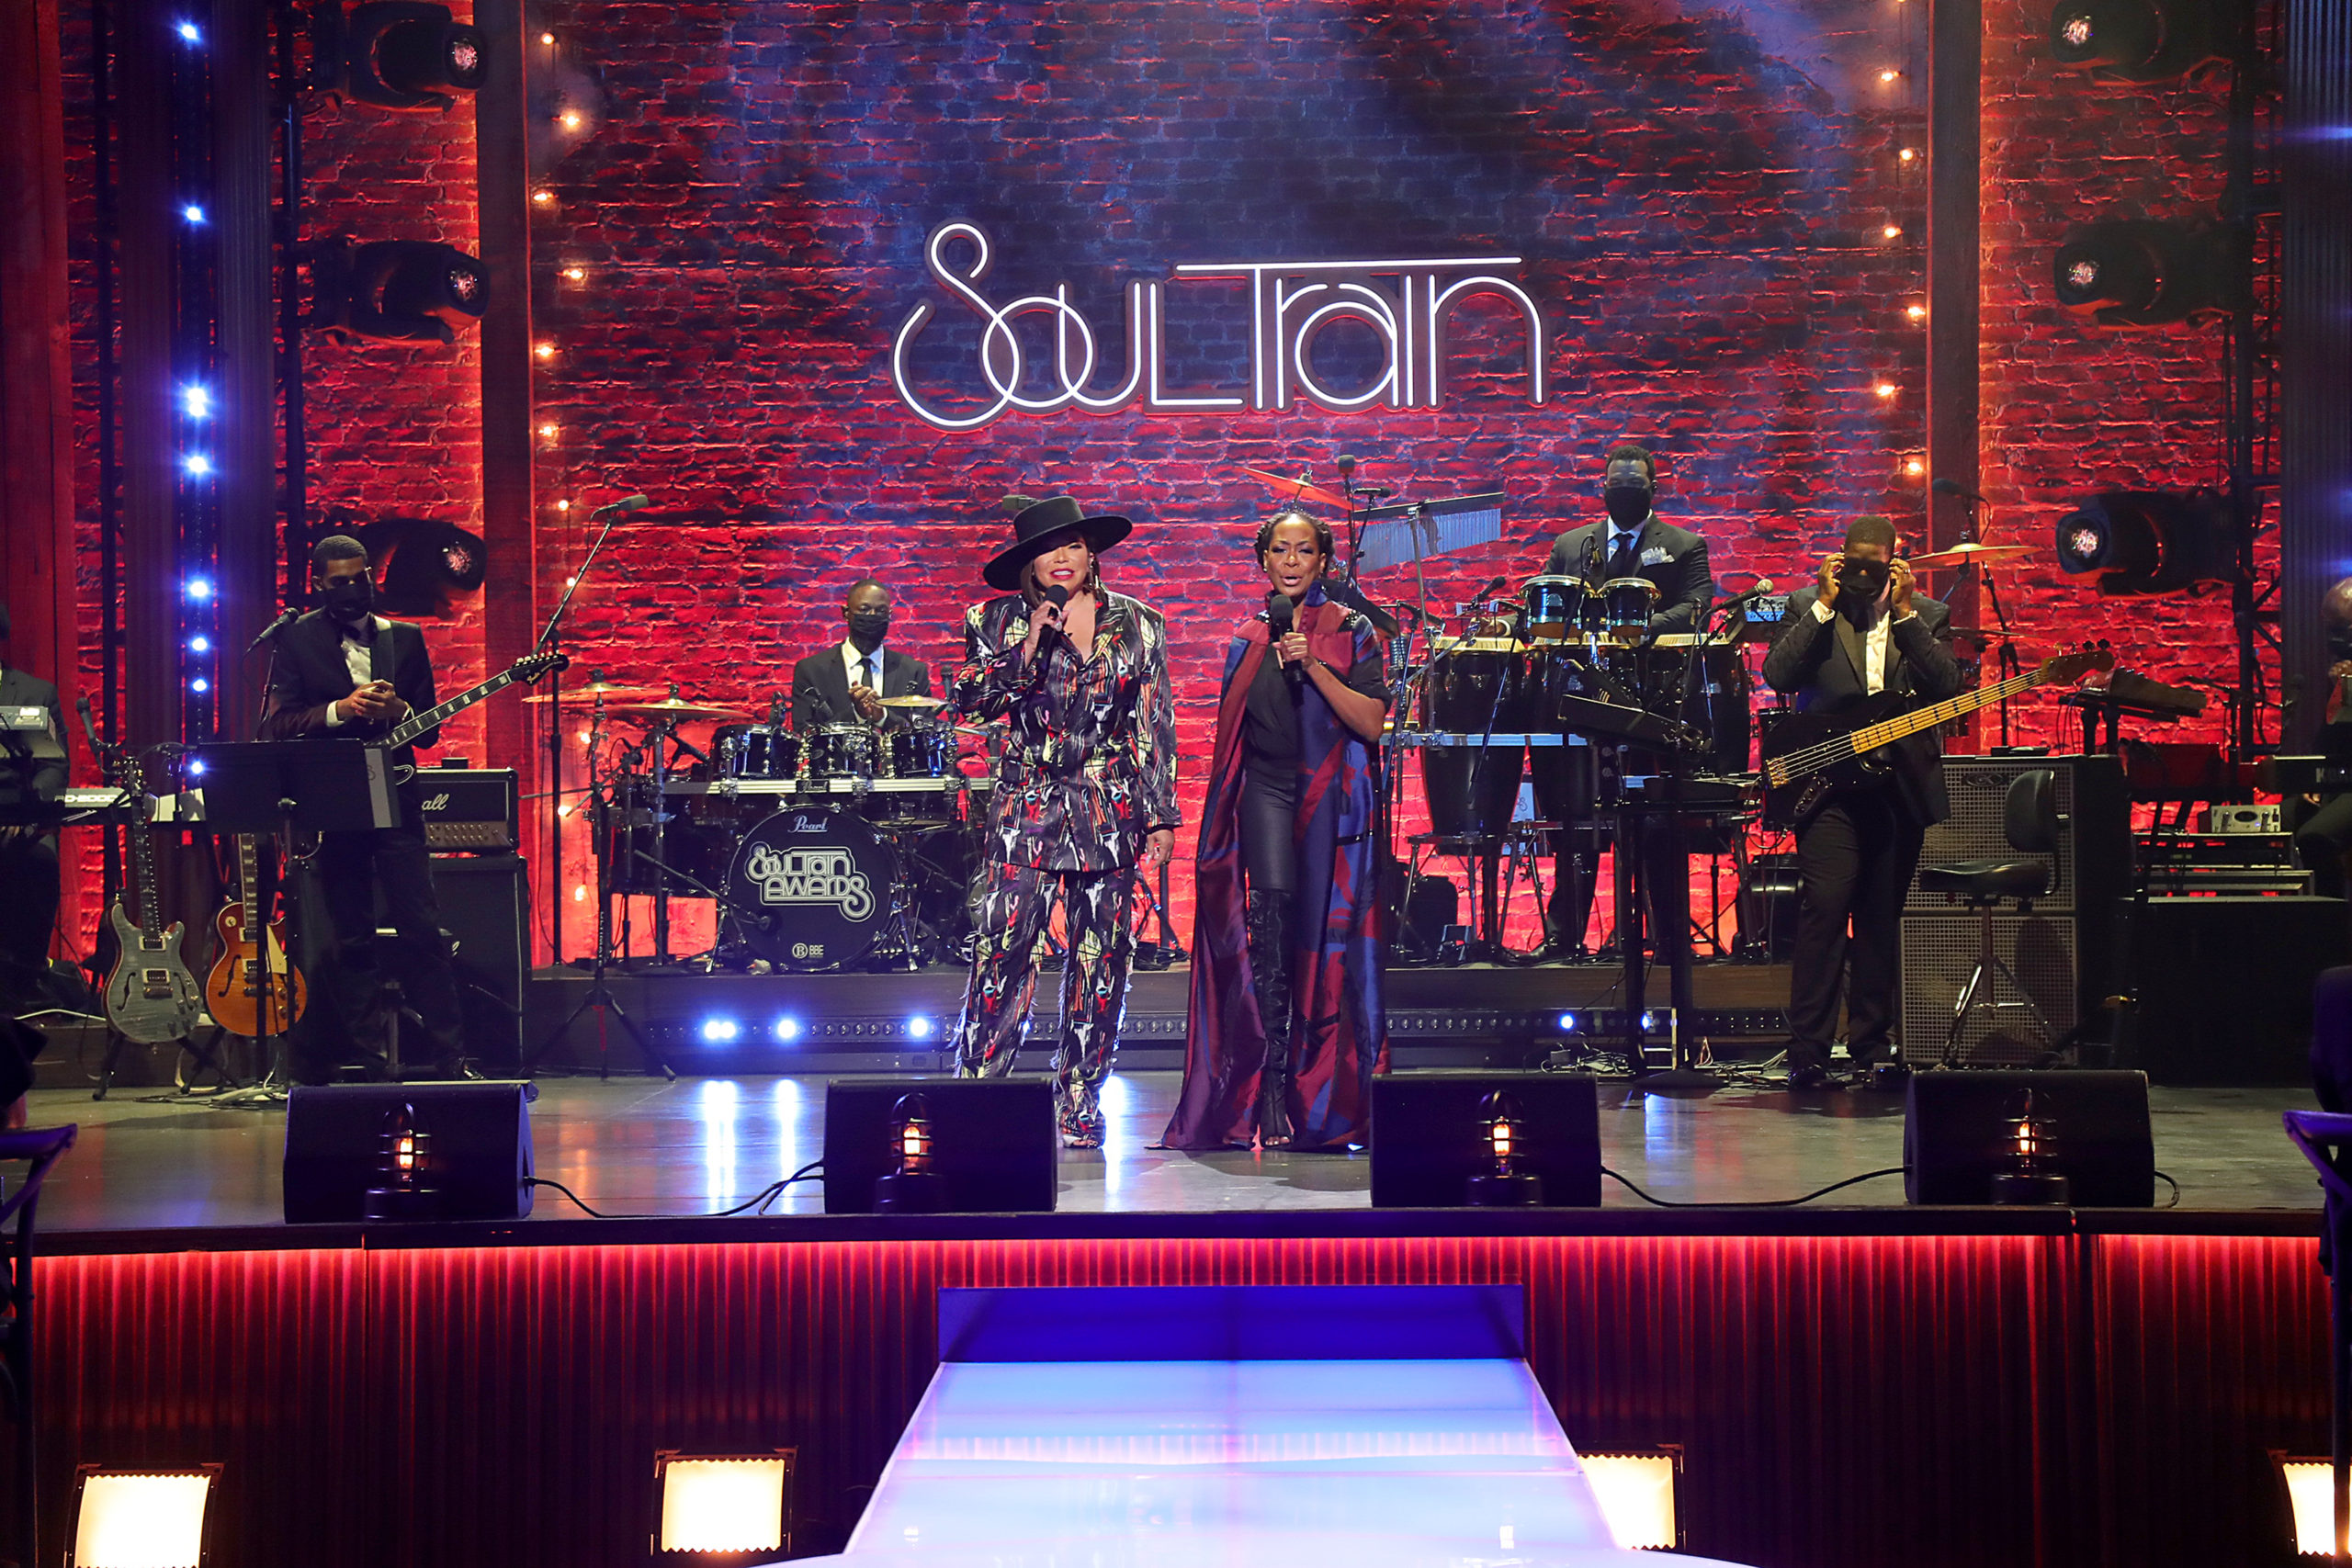 How to watch the Soul Train Awards tonight (11/29/20): time, channel, stream